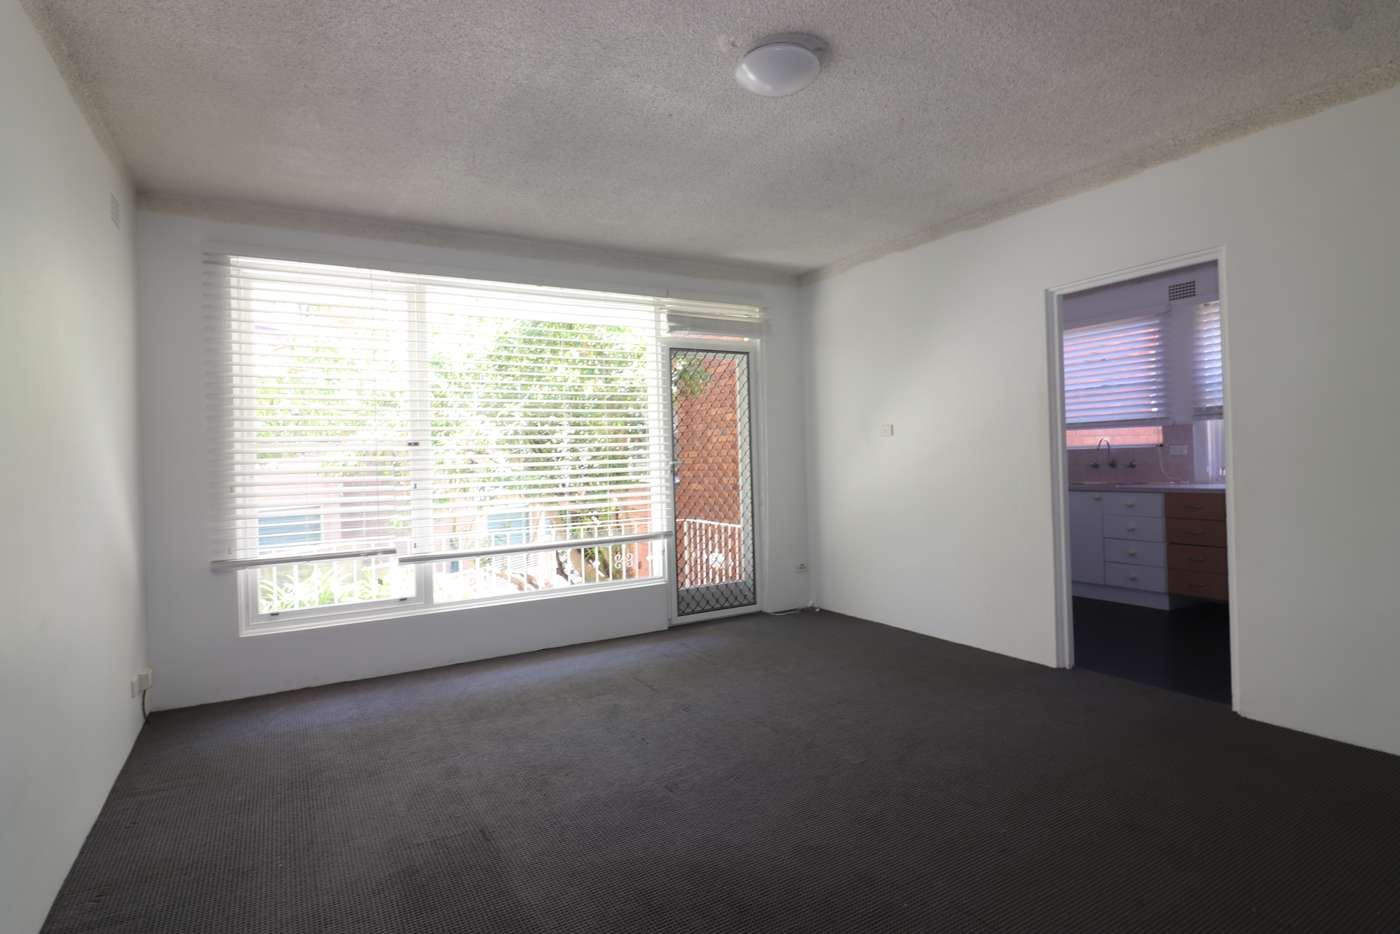 Main view of Homely unit listing, 3/15 Wilbar Ave, Cronulla NSW 2230